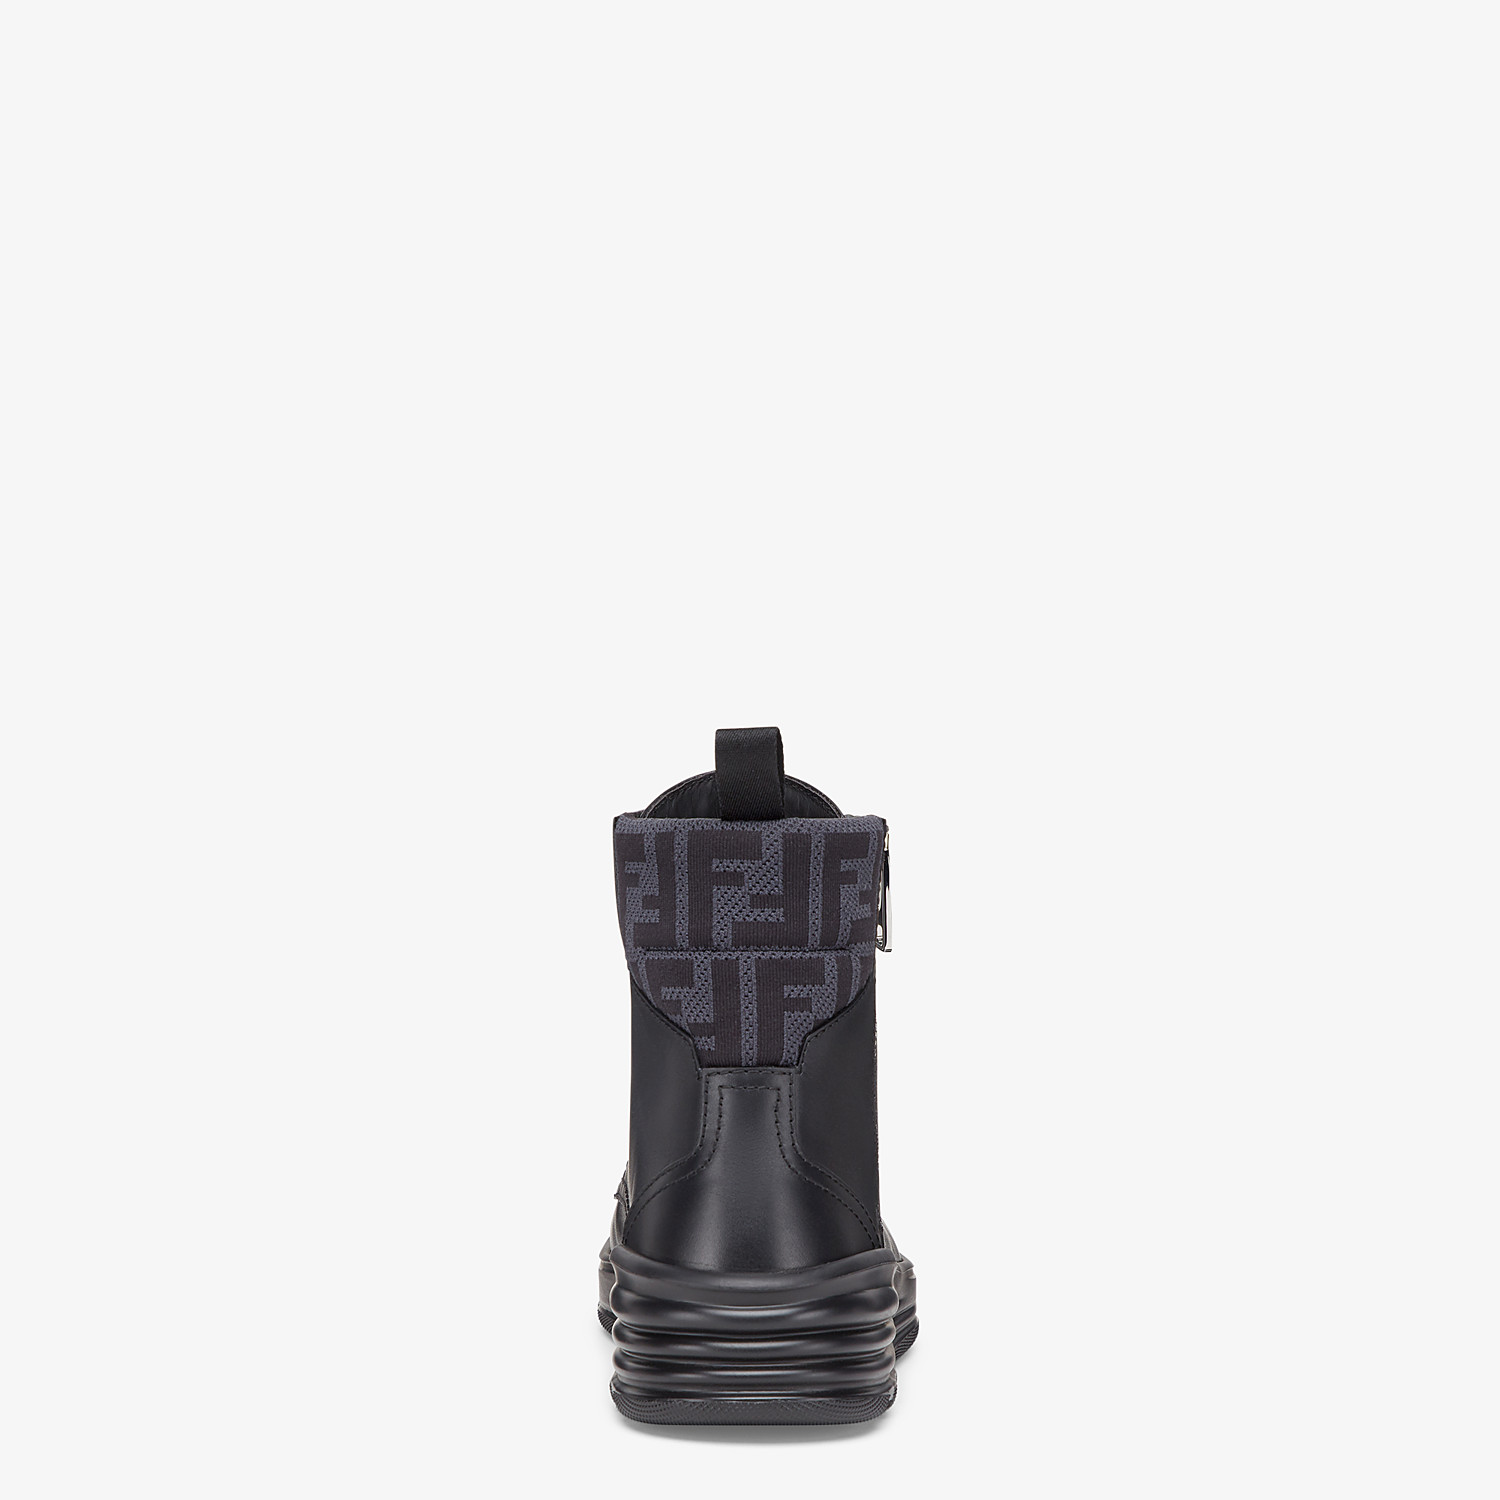 FENDI ANKLE BOOT - Black leather biker boots - view 3 detail